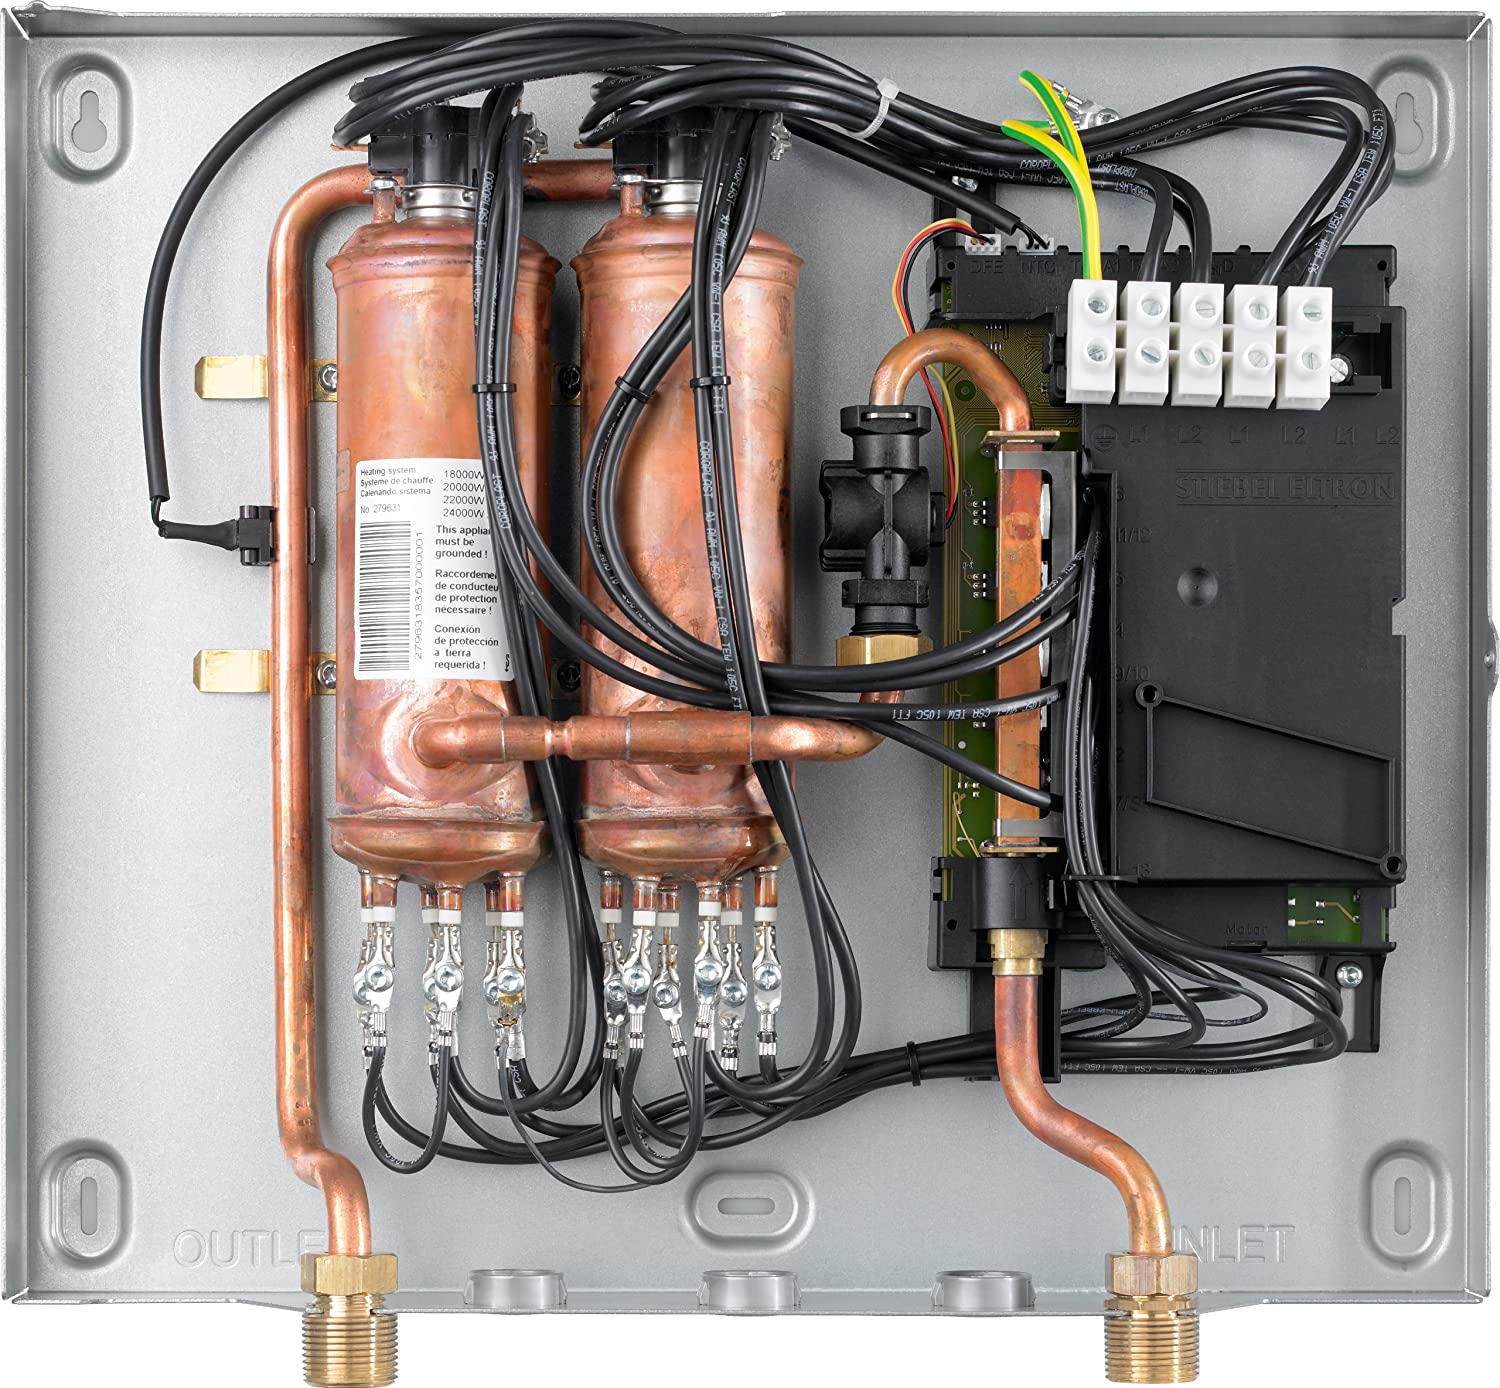 A1jOsvnSVTL._SL1500_ stiebel eltron tempra 20 kw, tankless electric water heater with rheem rte 18 wiring diagram at eliteediting.co